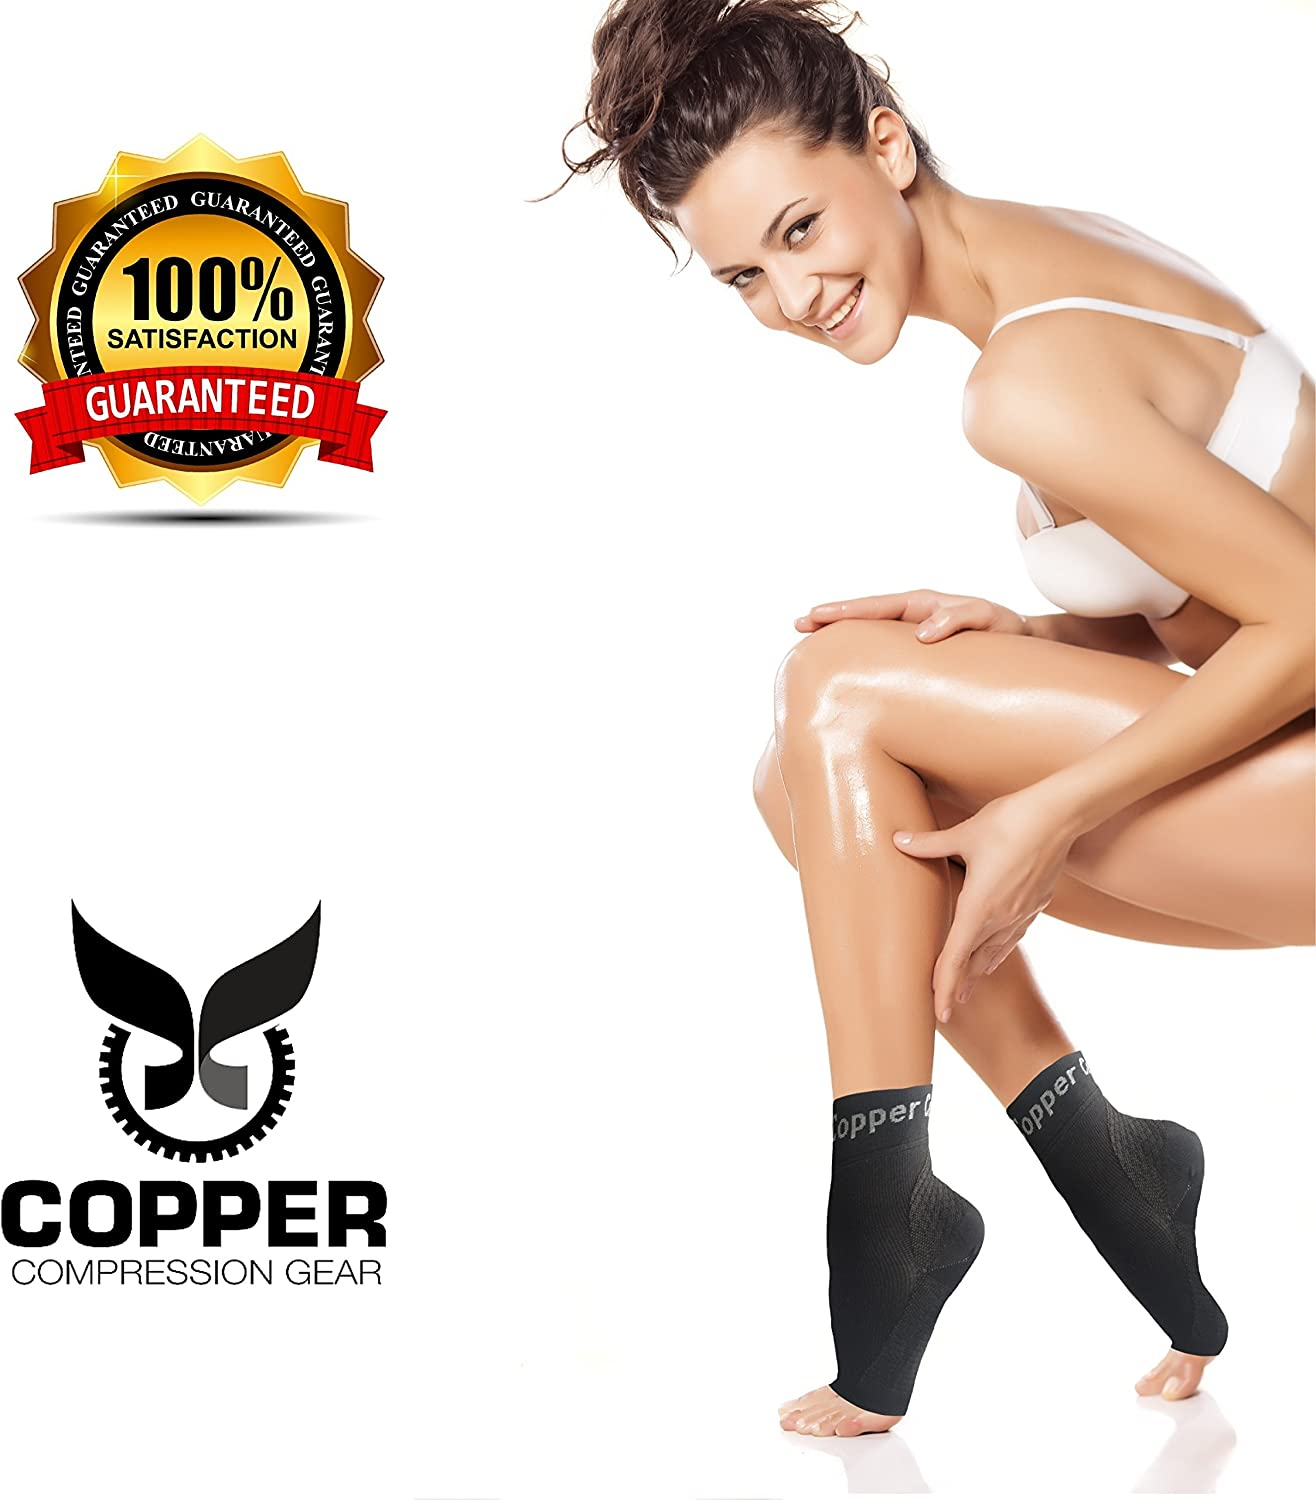 Reduce Swelling Speed Up Recovery Copper Compression Gear Plantar Fasciitis Foot Sleeves Support Socks for Men and Women 1-Pair Size XL Support. Get Instant Relief